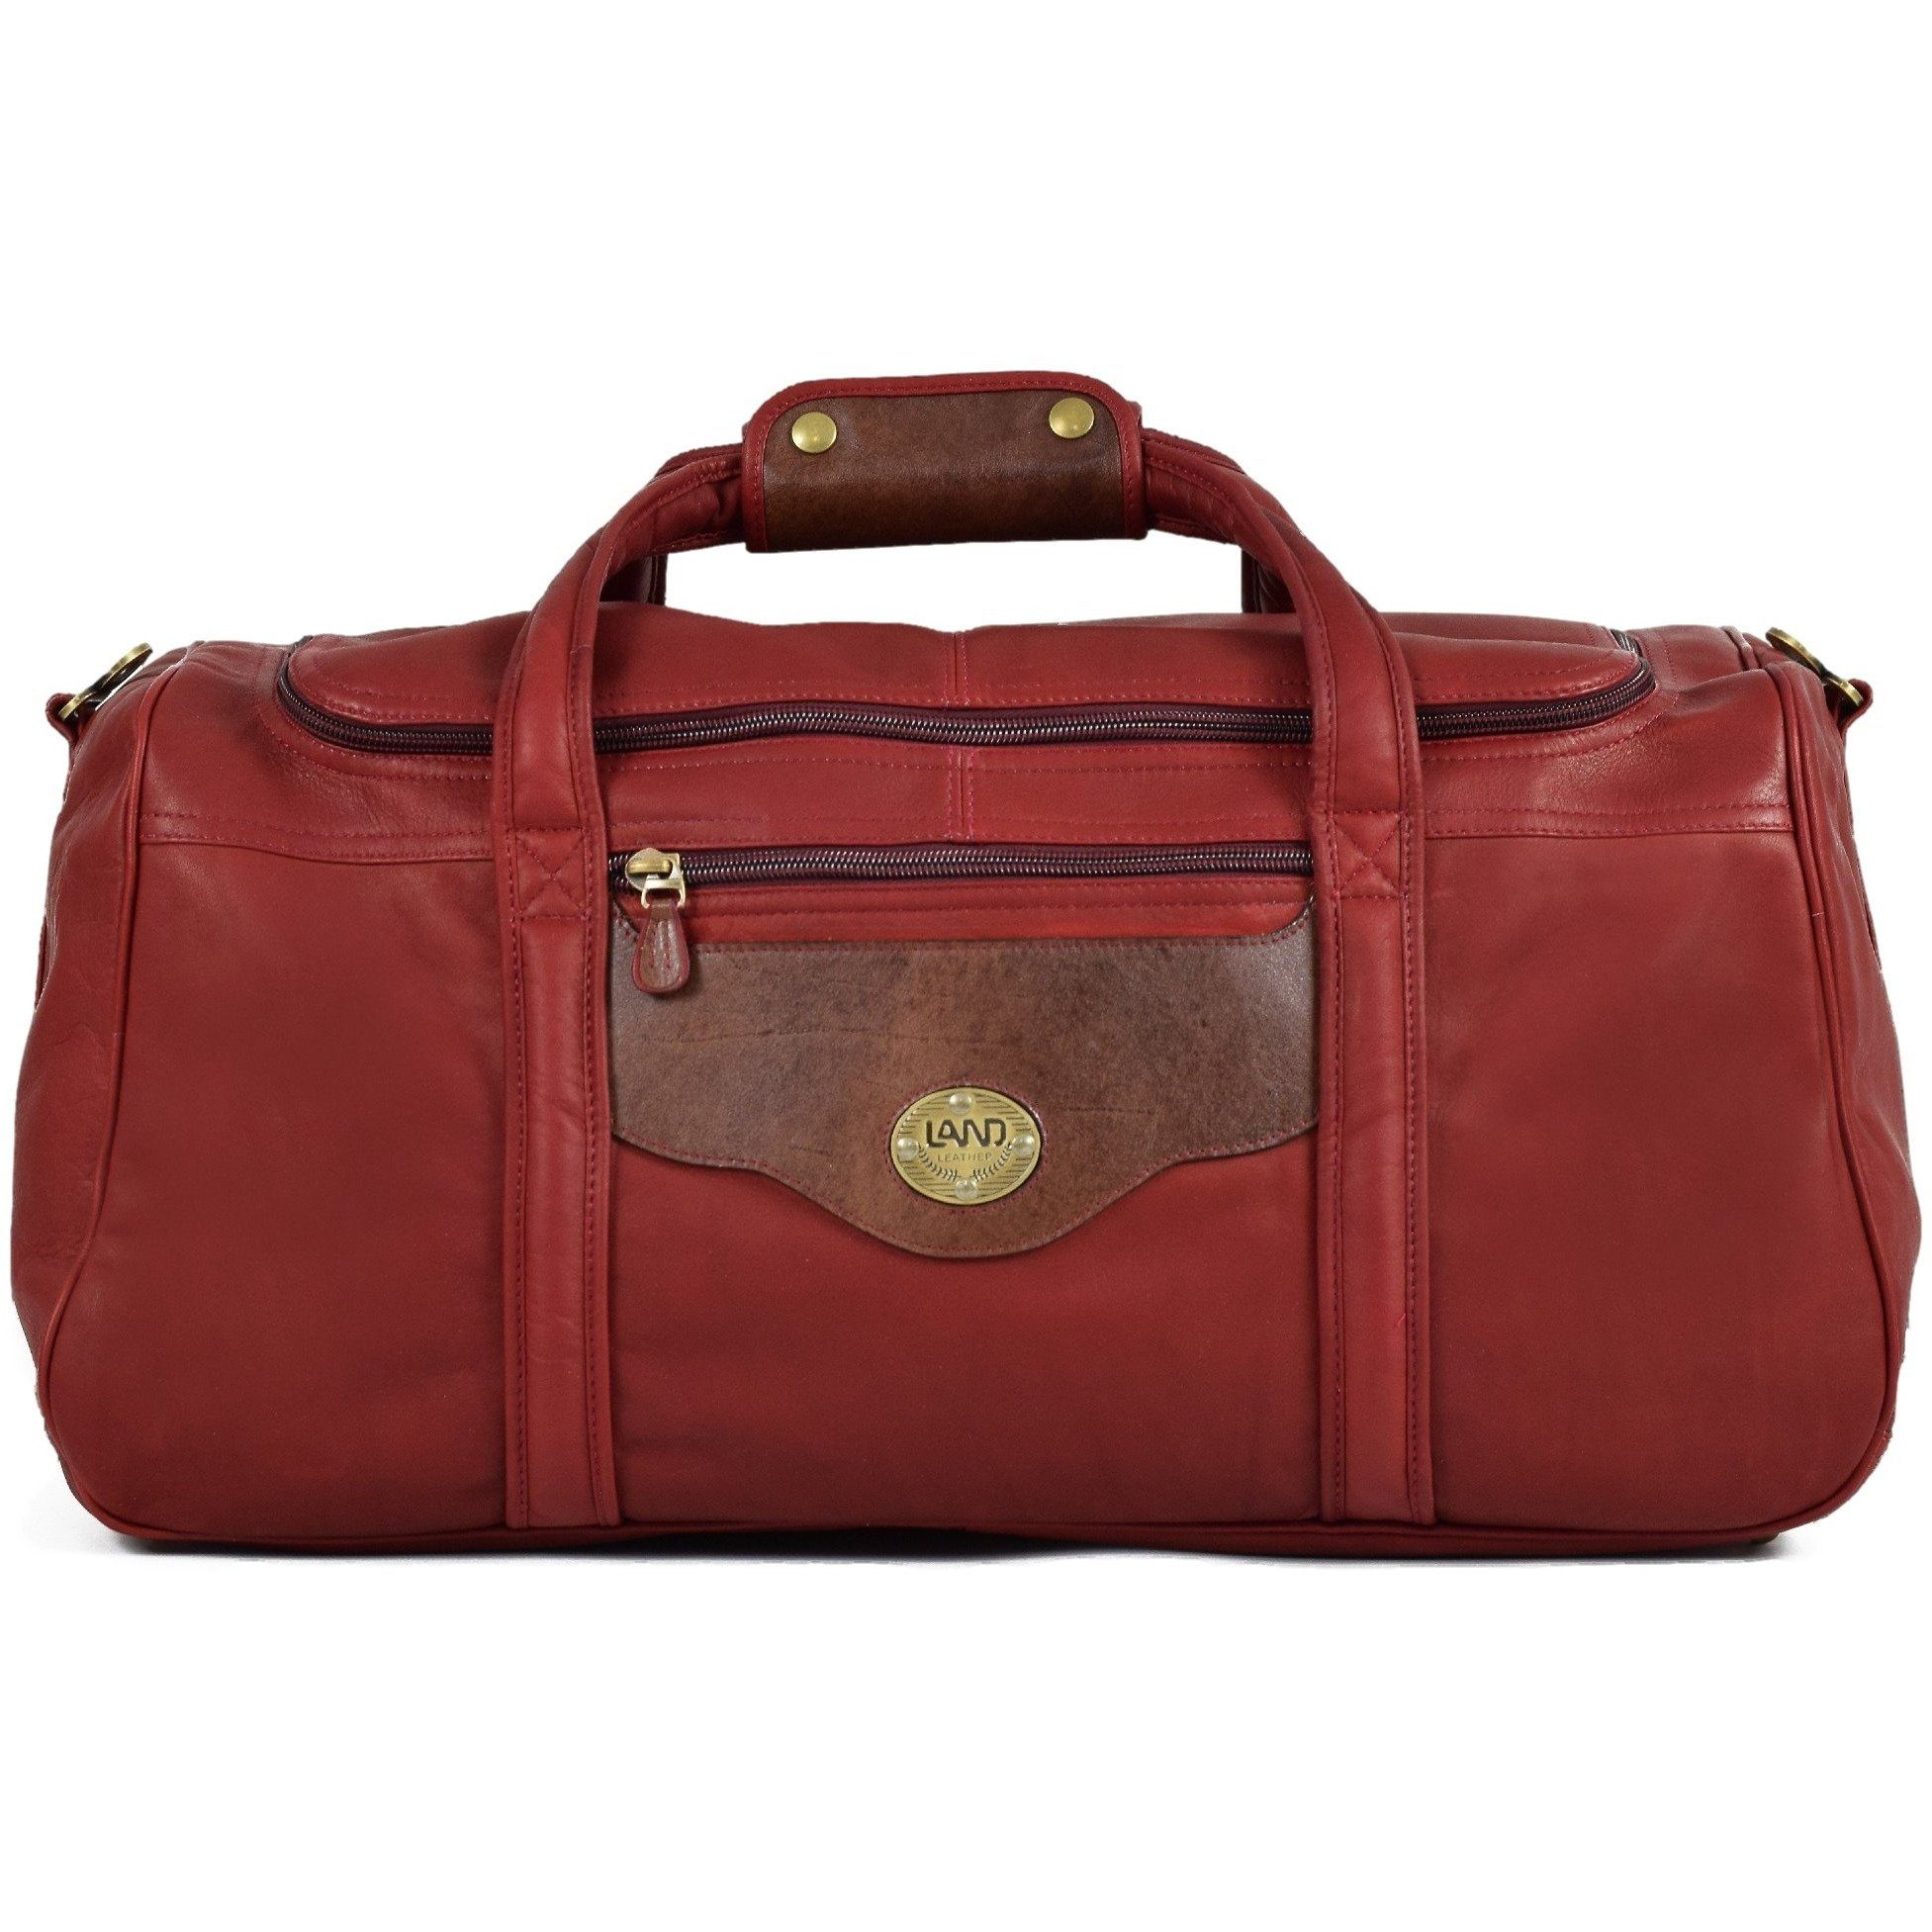 Anniversary San Fran Duffel Bag, Duffel Bag | LAND Leather